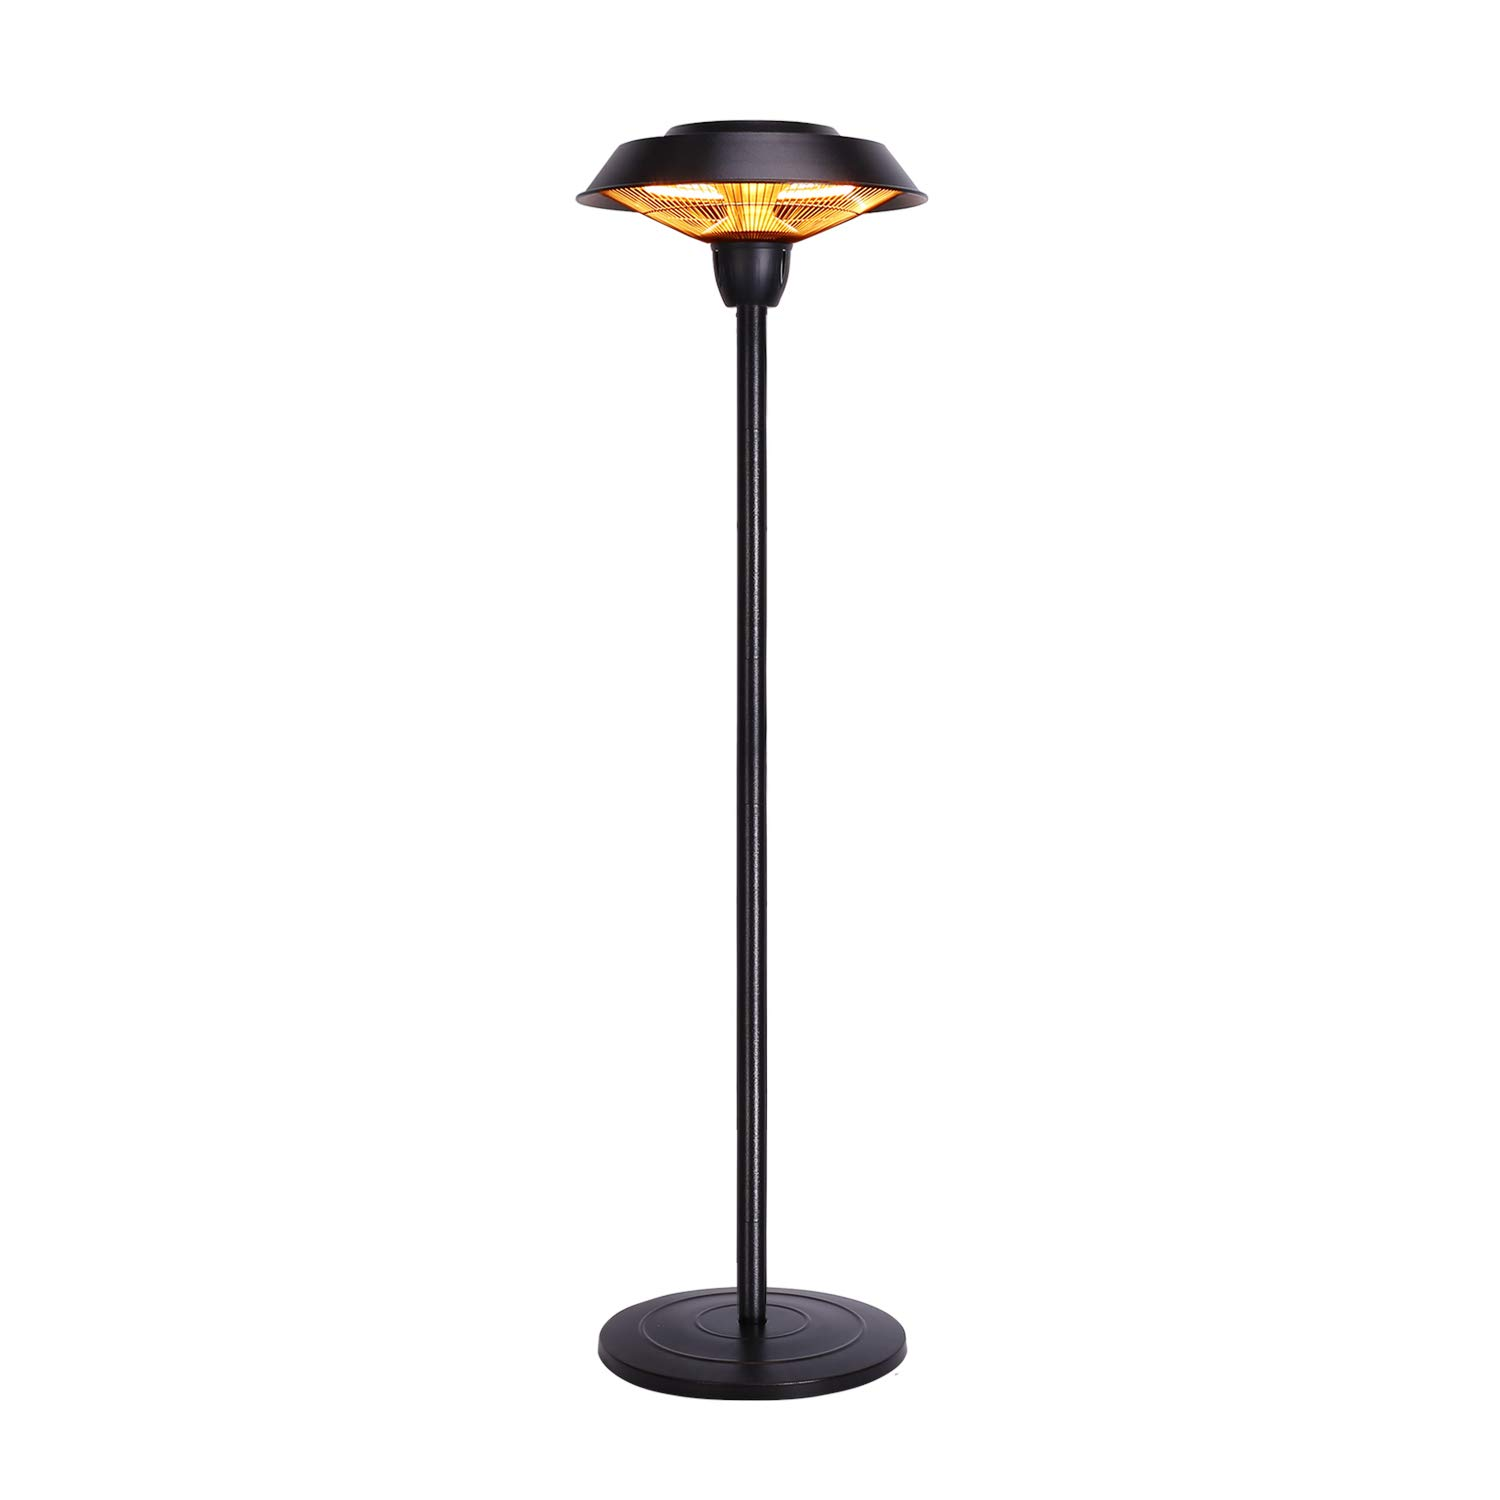 Star Patio Outdoor Freestanding Electric Patio Heater, Infrared Heater, Hammered Bronze Finished, Portable Heater Suitable as a Balcony Heater, BBQ and Outdoor Party Heater, 1566-C-S by Star Patio